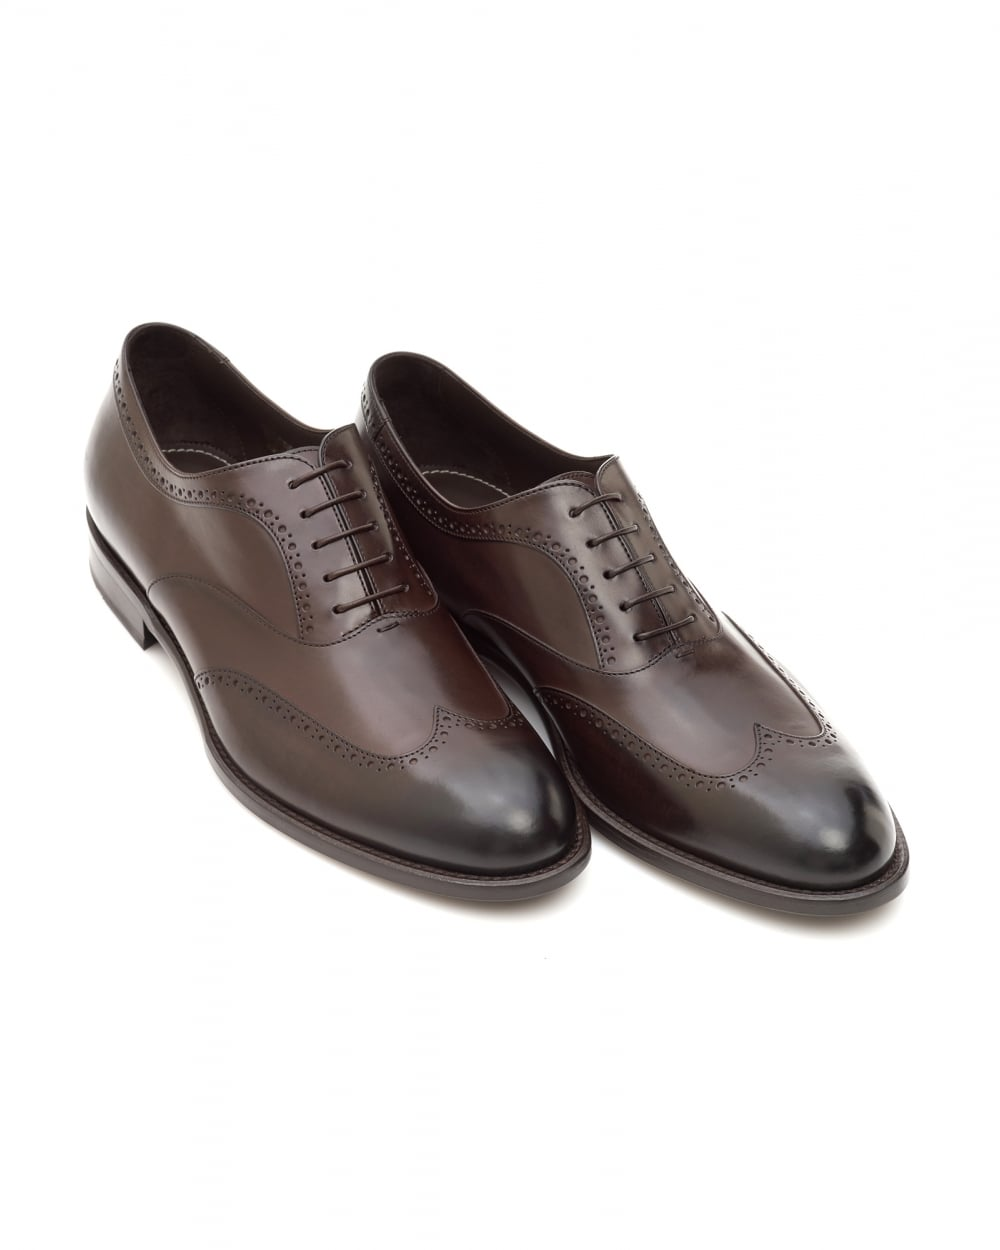 Outlet Cheapest Oxford shoes in smooth leather BOSS Drop Shipping Discount Footlocker Pictures Aberdeen Free Shipping Visa Payment 23RHYAtpqt